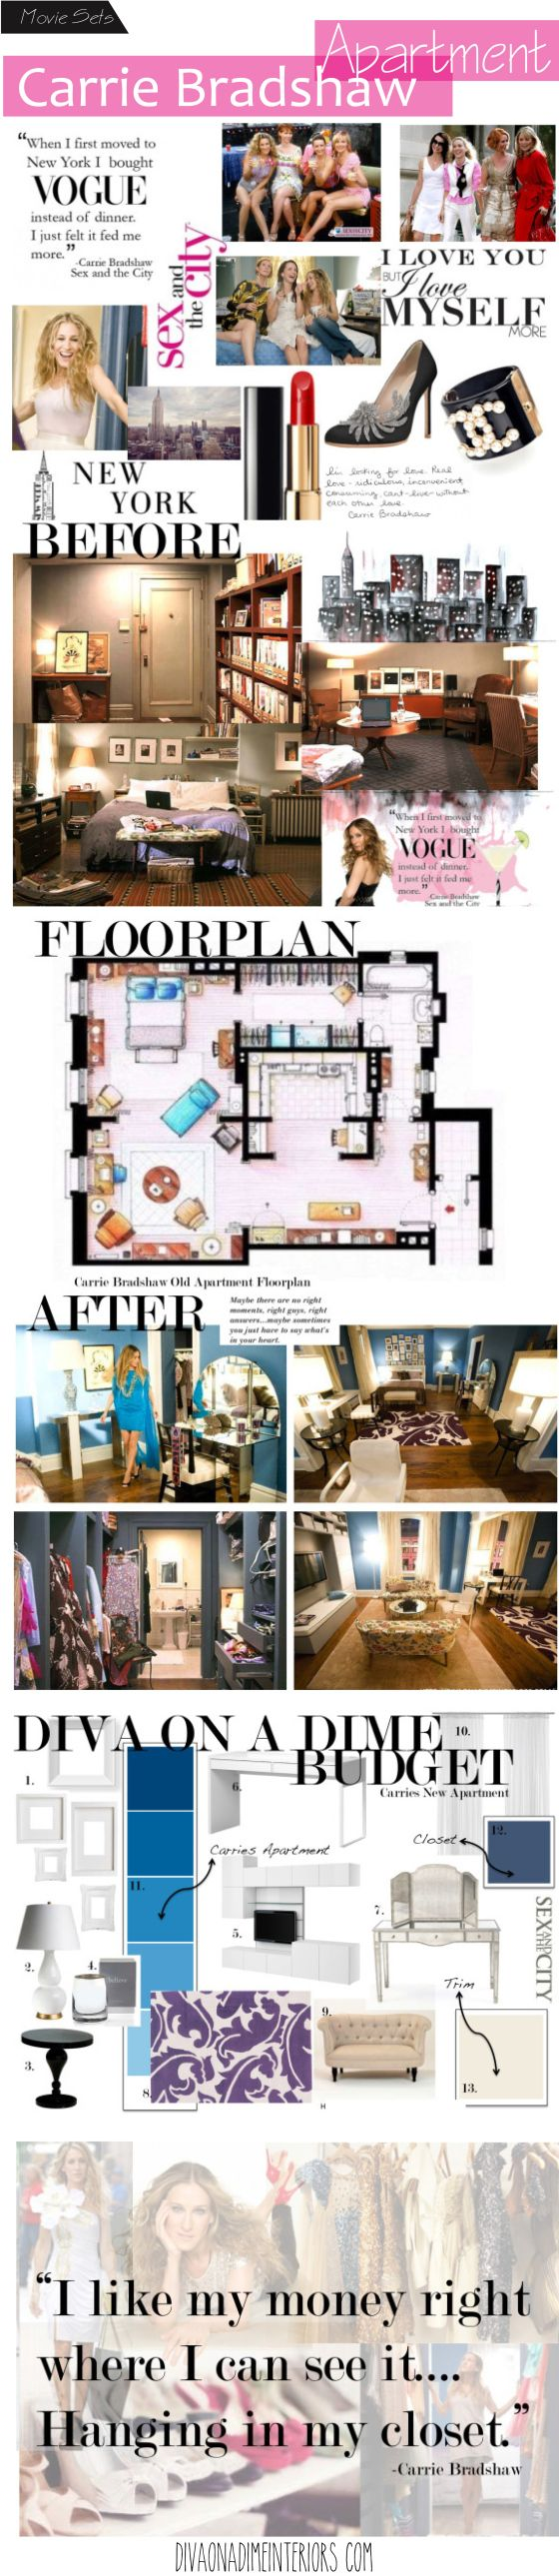 carrie bradshaw apartment awesome interior design blog reminds me of alicia pinterest. Black Bedroom Furniture Sets. Home Design Ideas